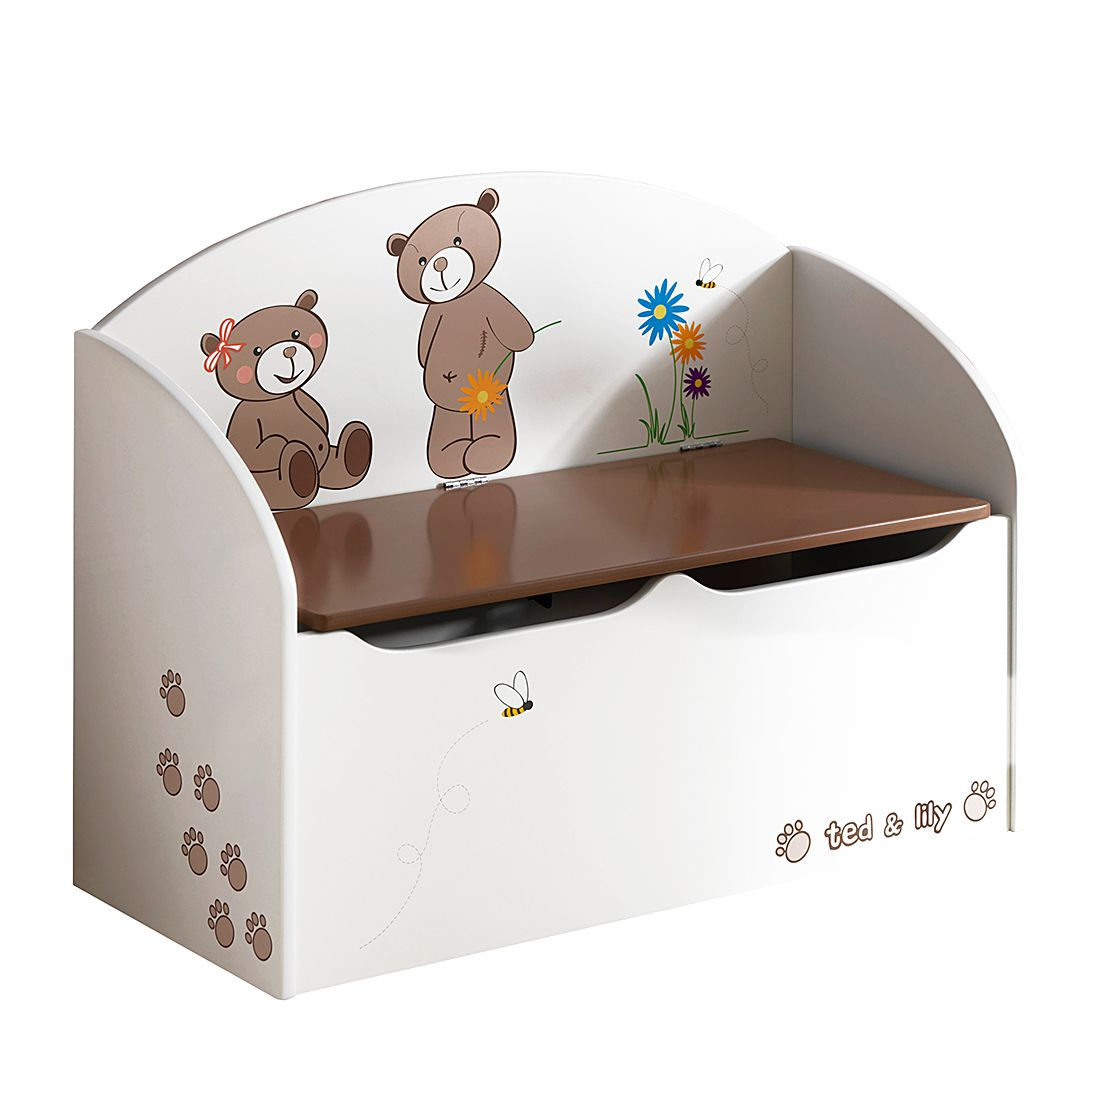 Spielzeugtruhe Ted - Beige/Chocolat, Kids Club Collection